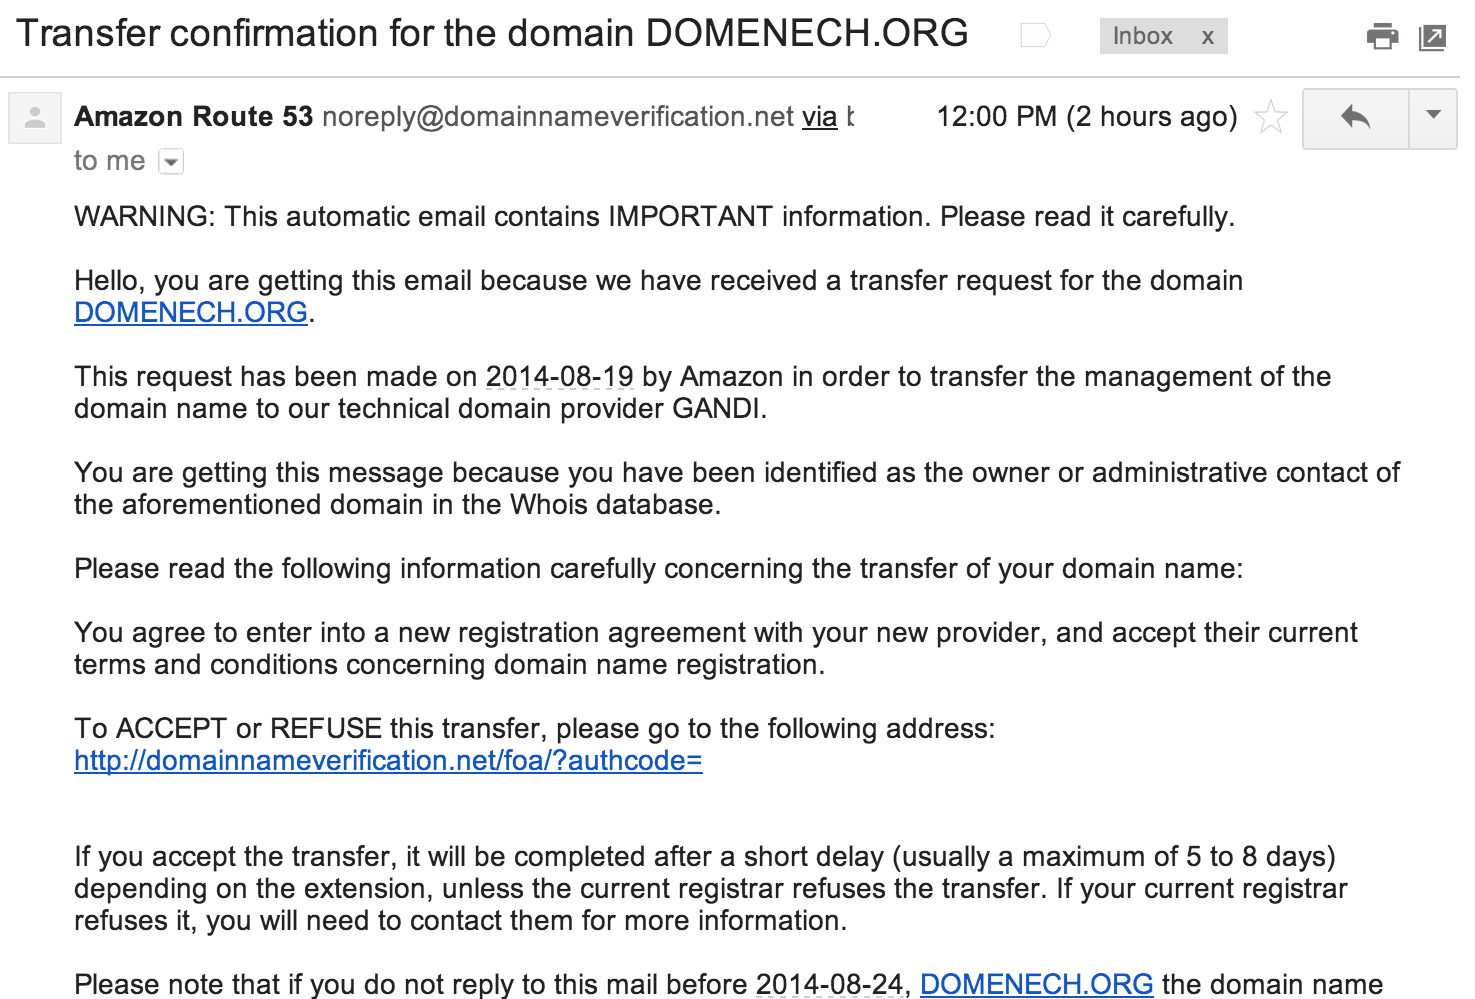 blog-domenech-org-transfer-internet-domain-to-aws-route-53-step-domainnameverification.net-7b